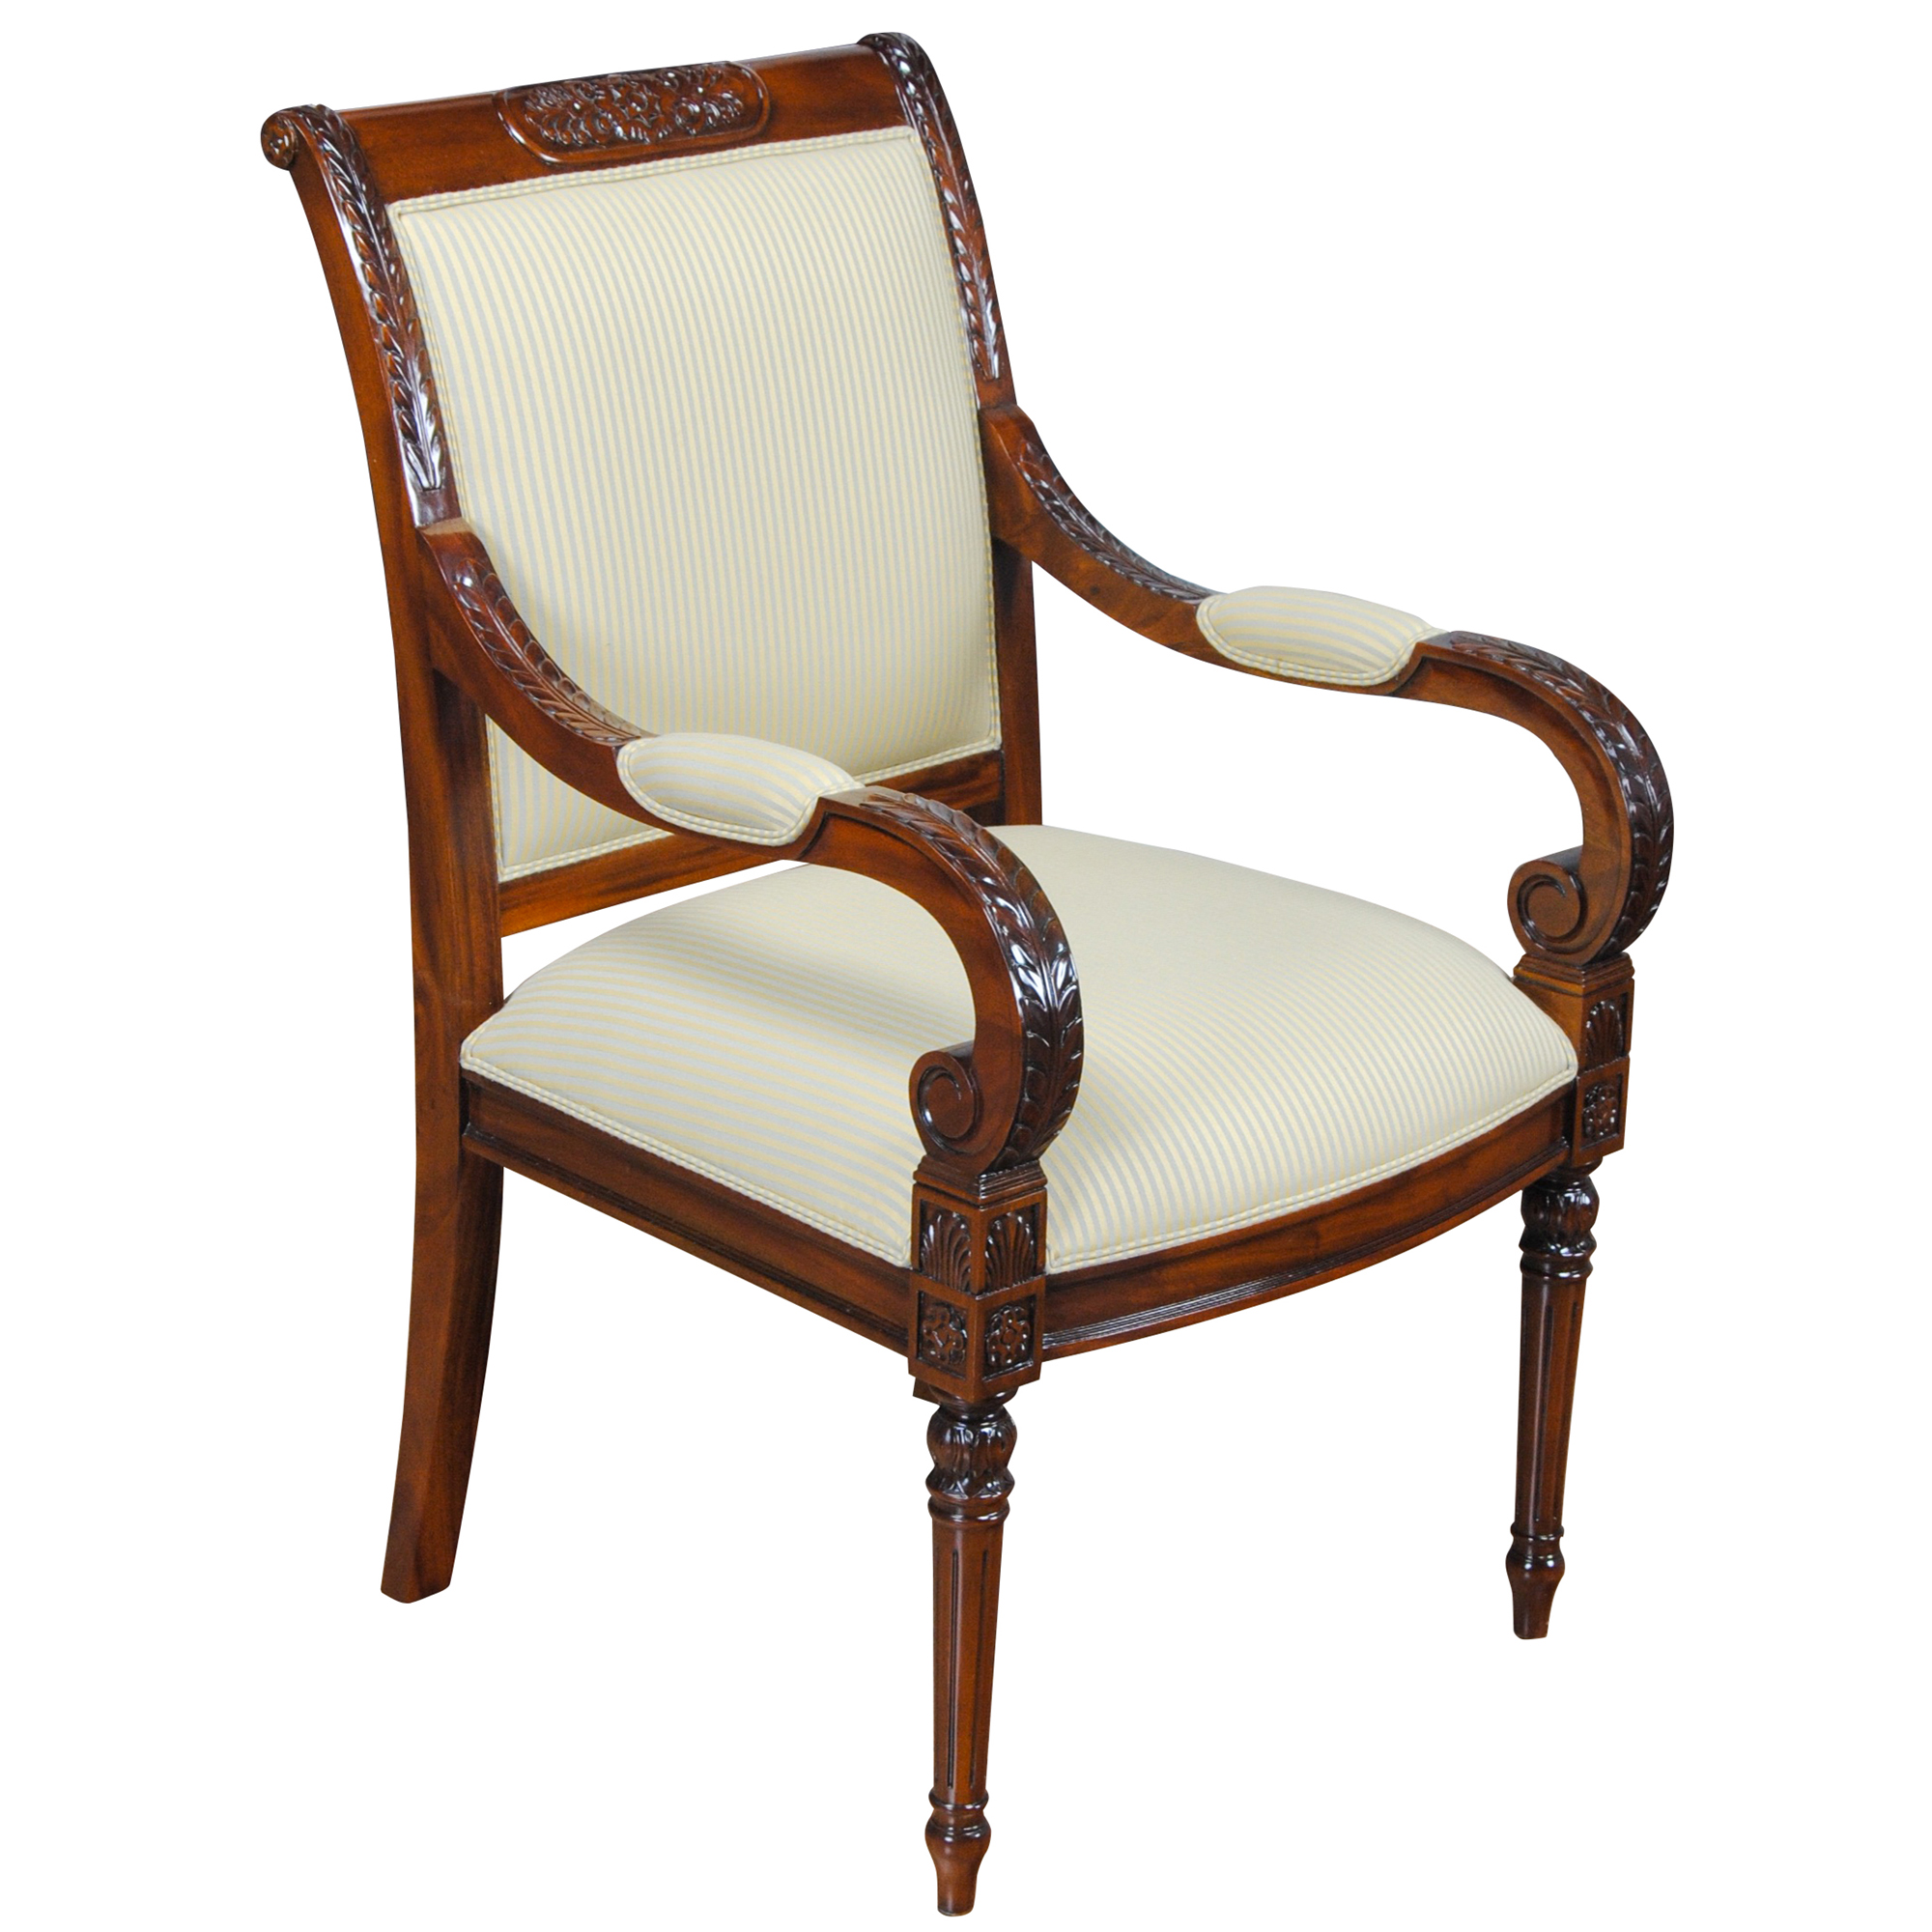 Carved Empire Upholstered Arm Chair, Niagara Furniture